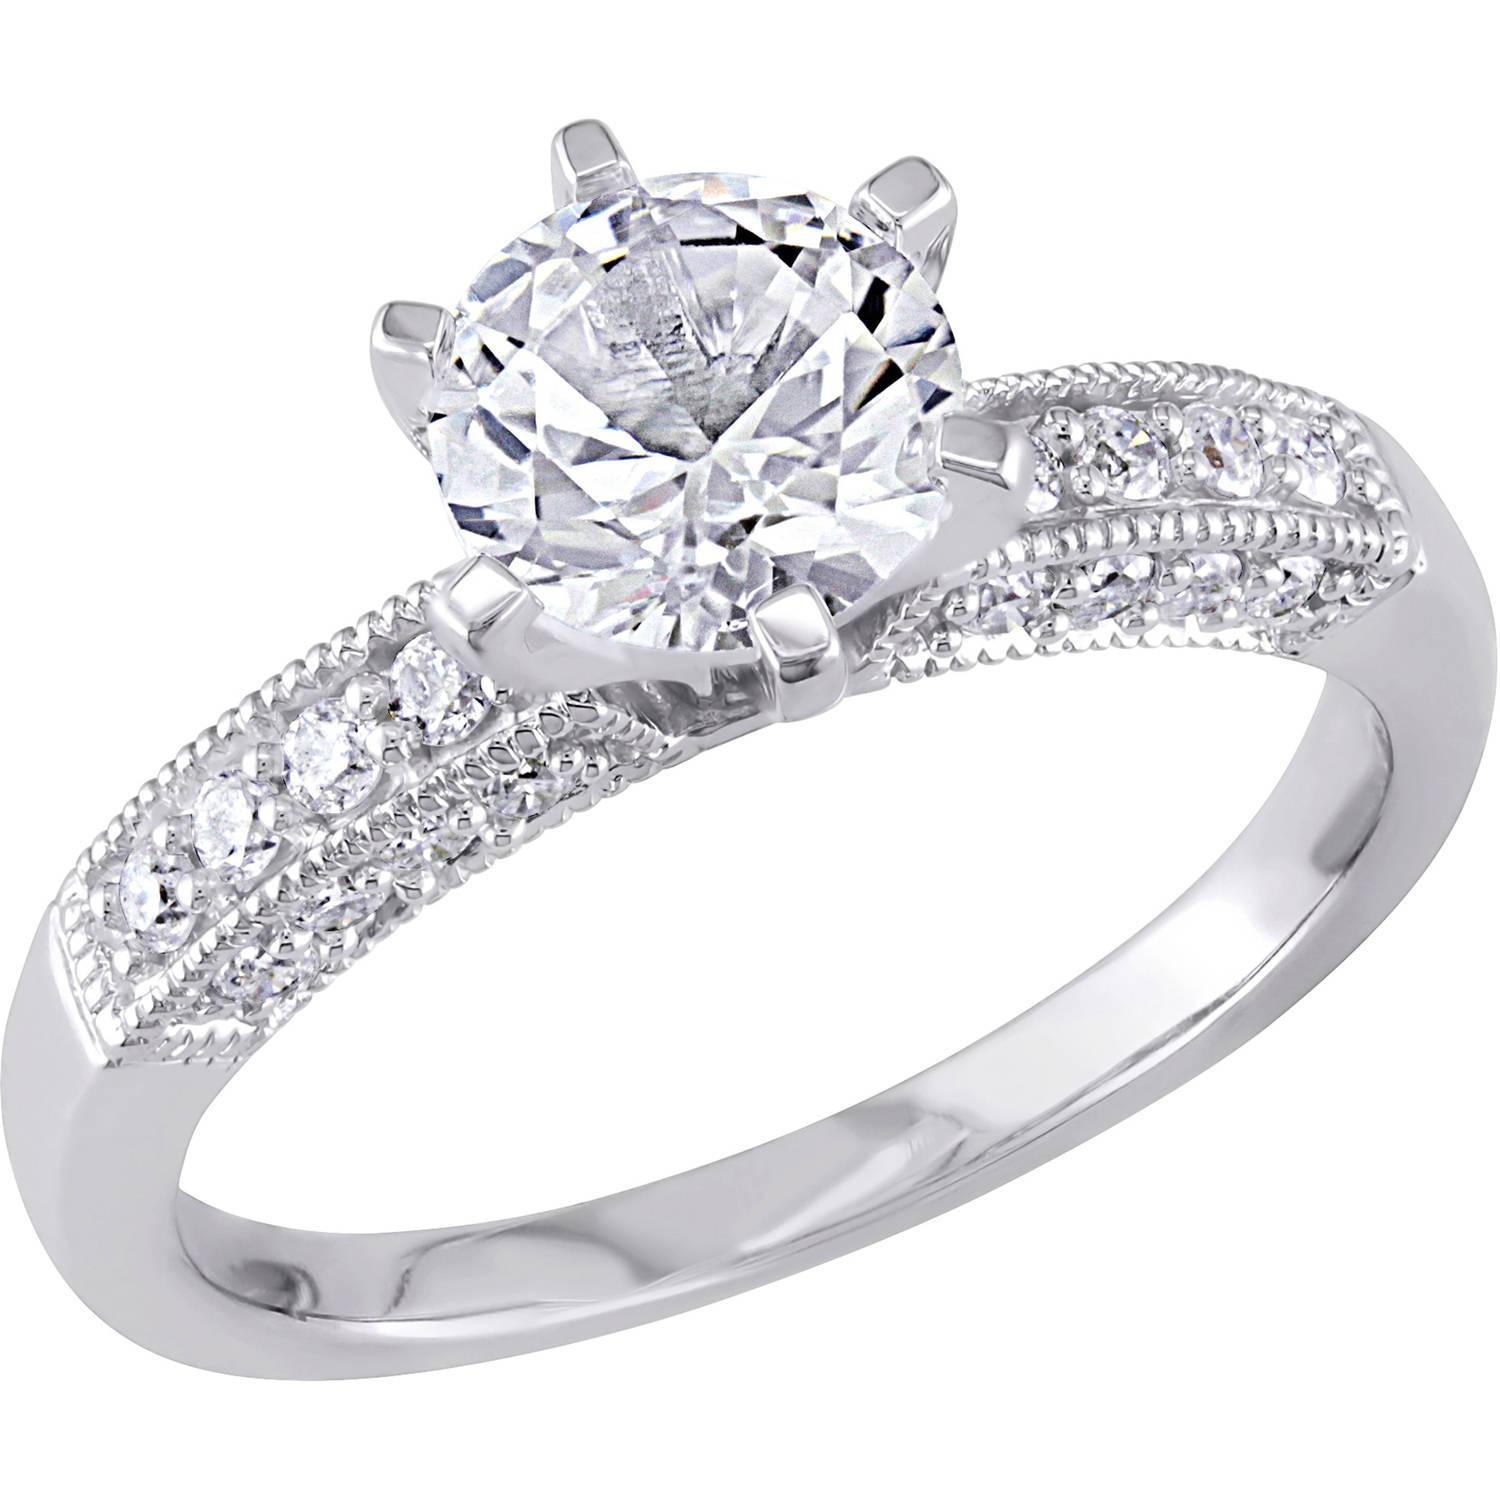 Wedding Rings : 4 Carat Rings Bridal Sets Under 500 4 Carat Inside Engagement Rings For Women Under  (View 15 of 15)